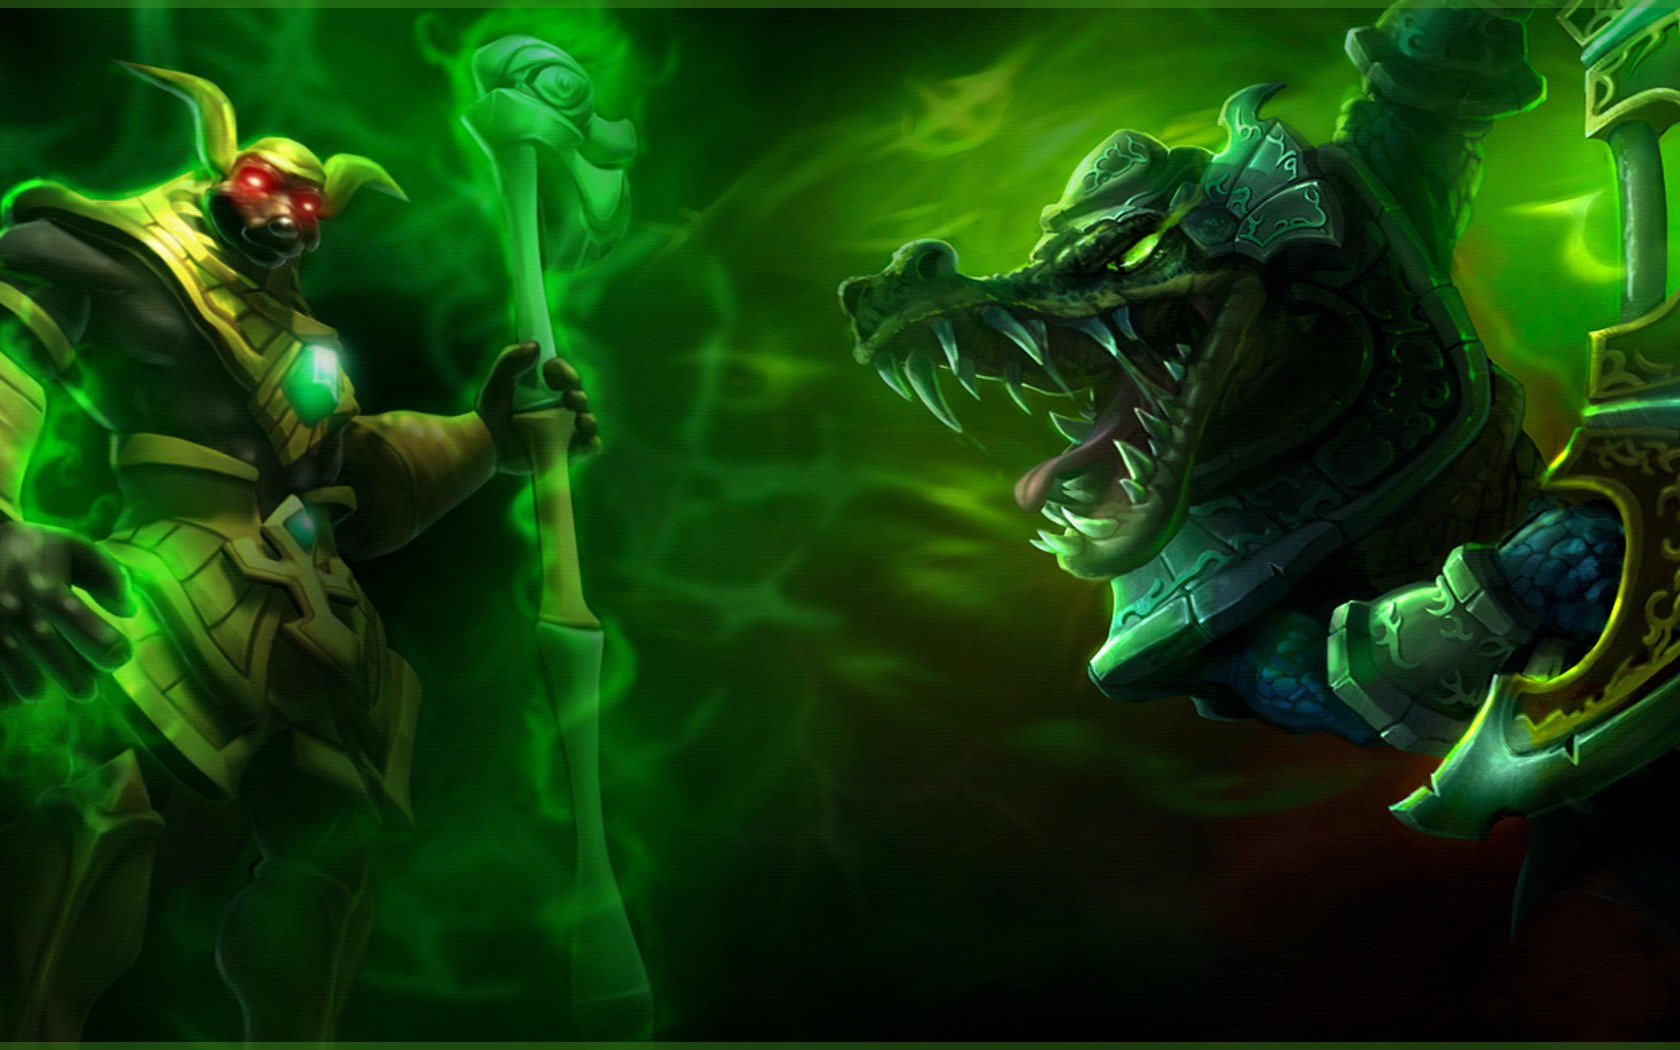 Video Game - League Of Legends  Renekton (League Of Legends) Nasus (League Of Legends) Wallpaper